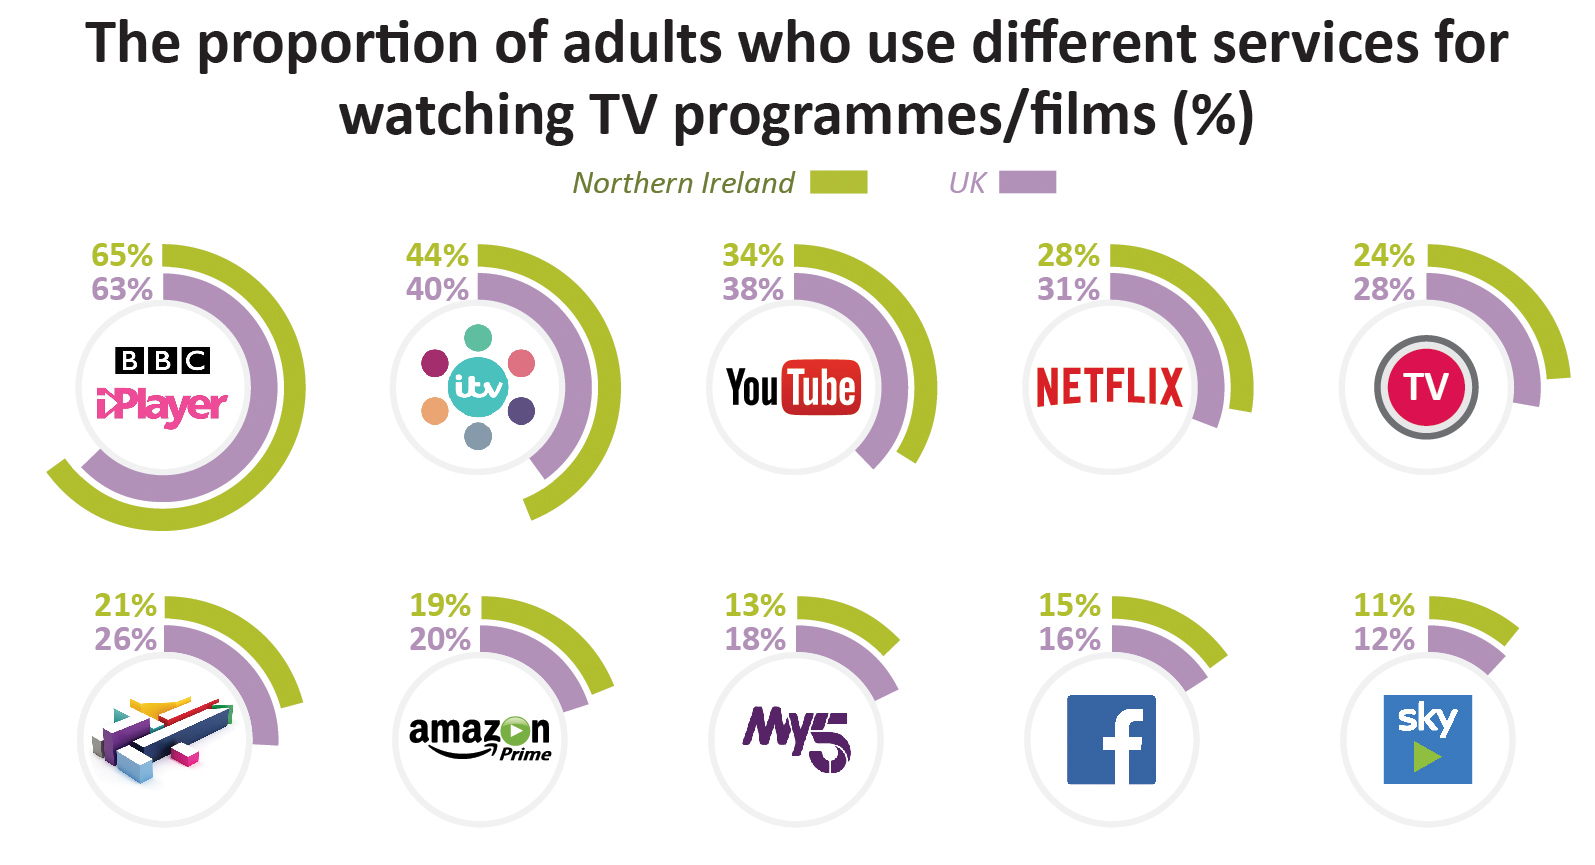 65% of adults in Northern Ireland use BBC iPlayer for watching TV programmes/films, compared to 63% across the UK